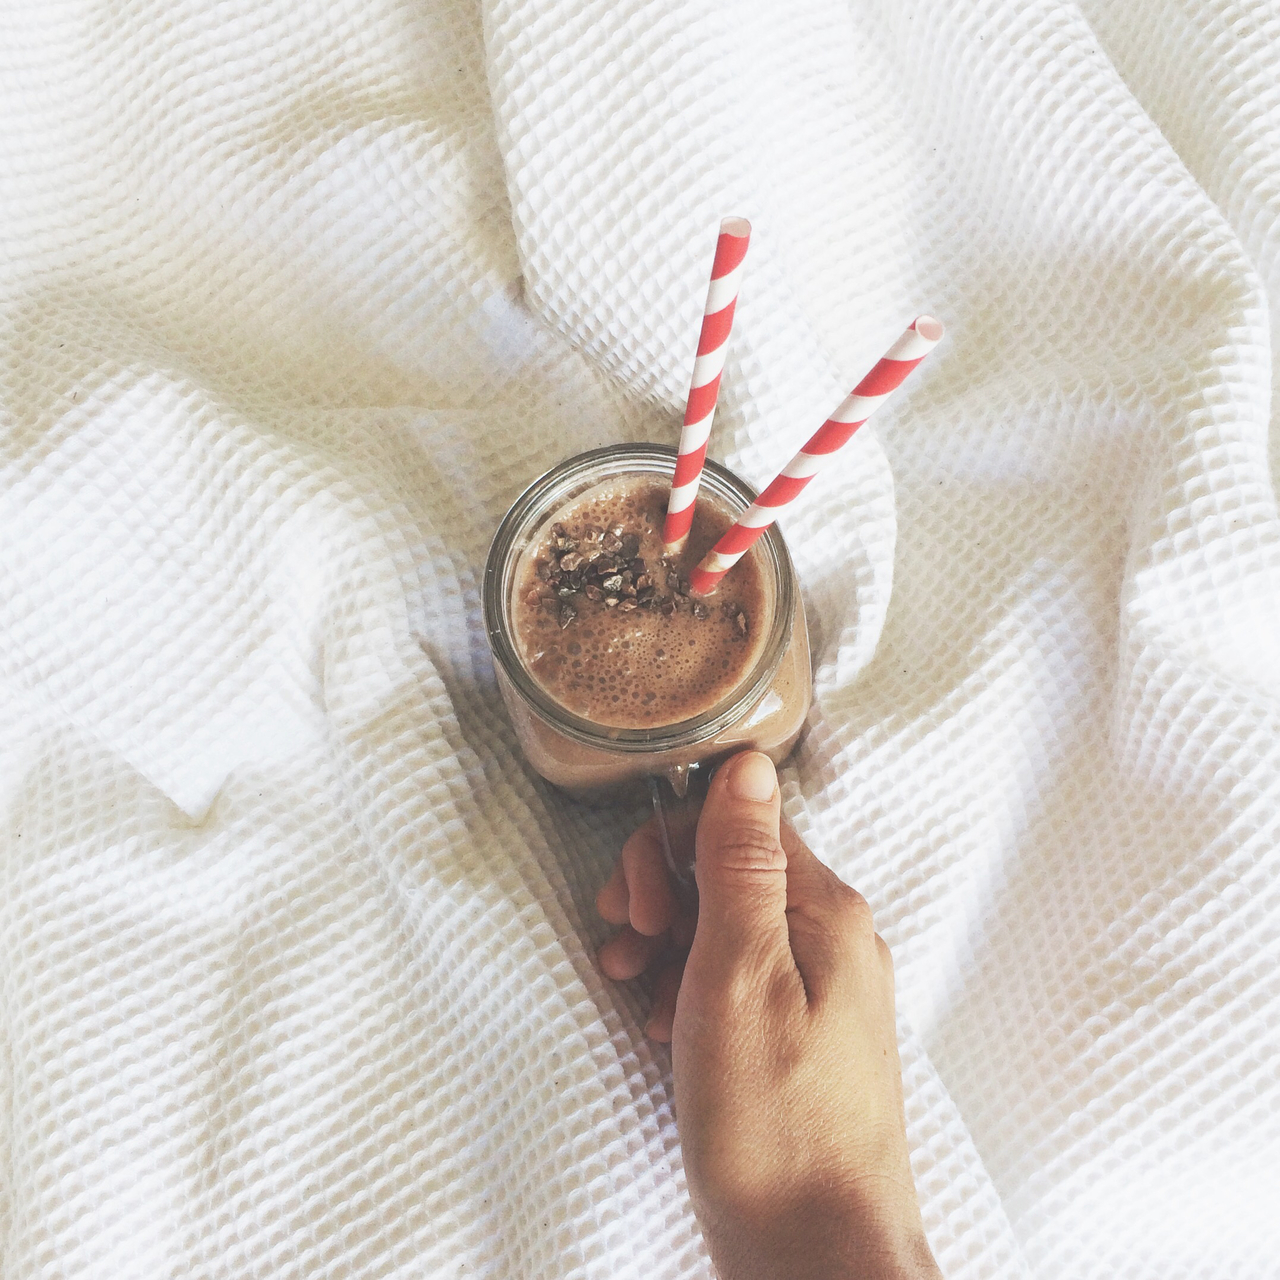 banana, blanket, breakfast, chocolate, cleaneating, glass, healthy, jar, linen, mason jar, peanut butter, peanutbutter, smoothie, straws, stripes, white, masonjar, dairyfree